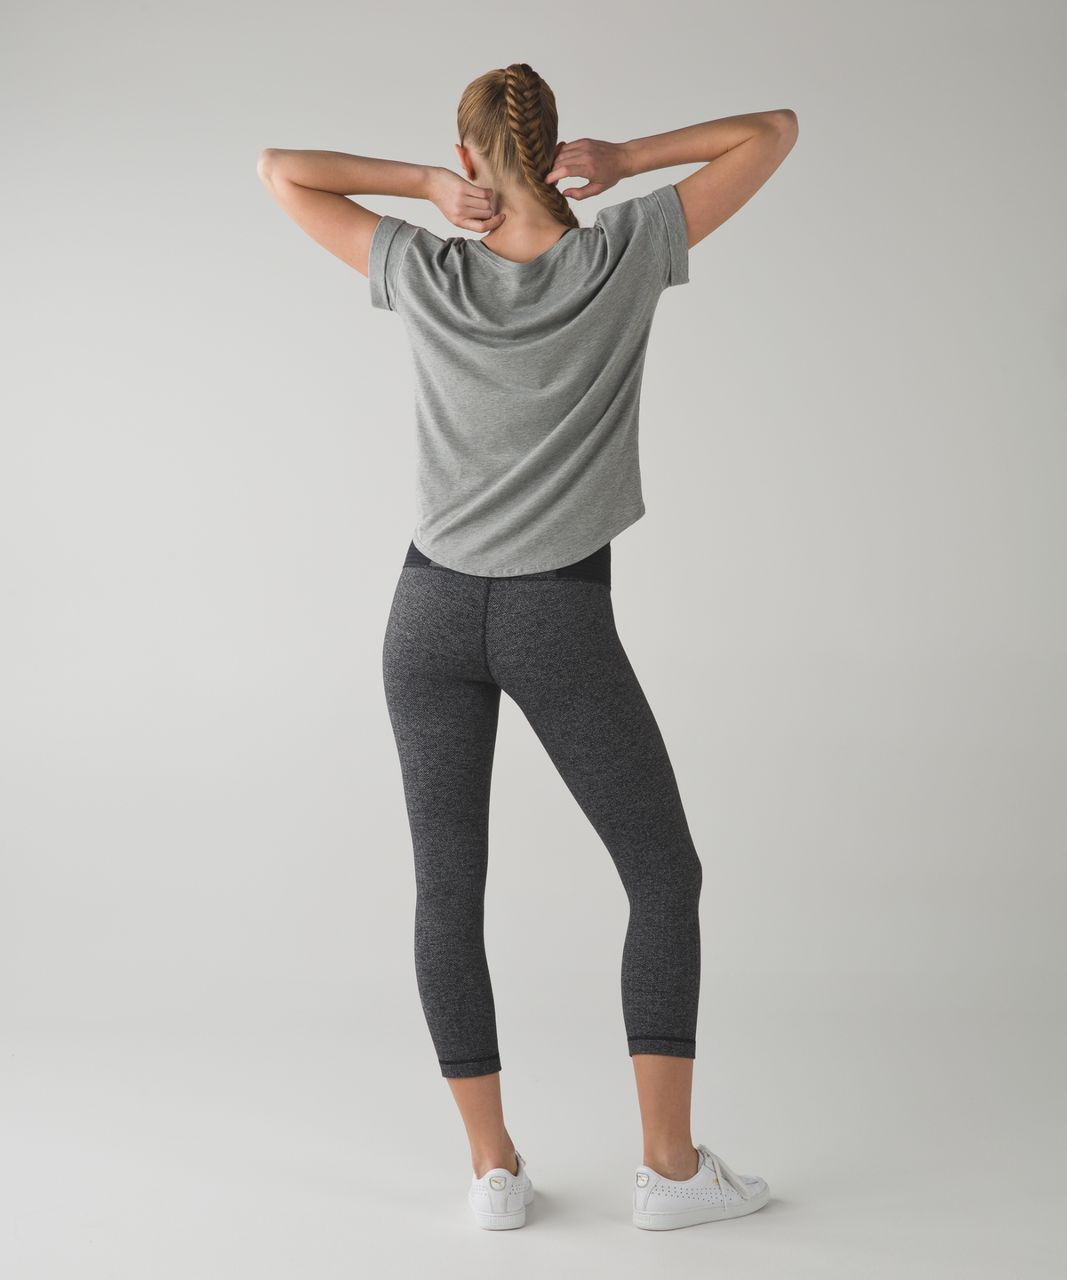 Lululemon Wunder Under Crop III - Heathered Herringbone Heathered Black Black / Fall 15 Quilt 1